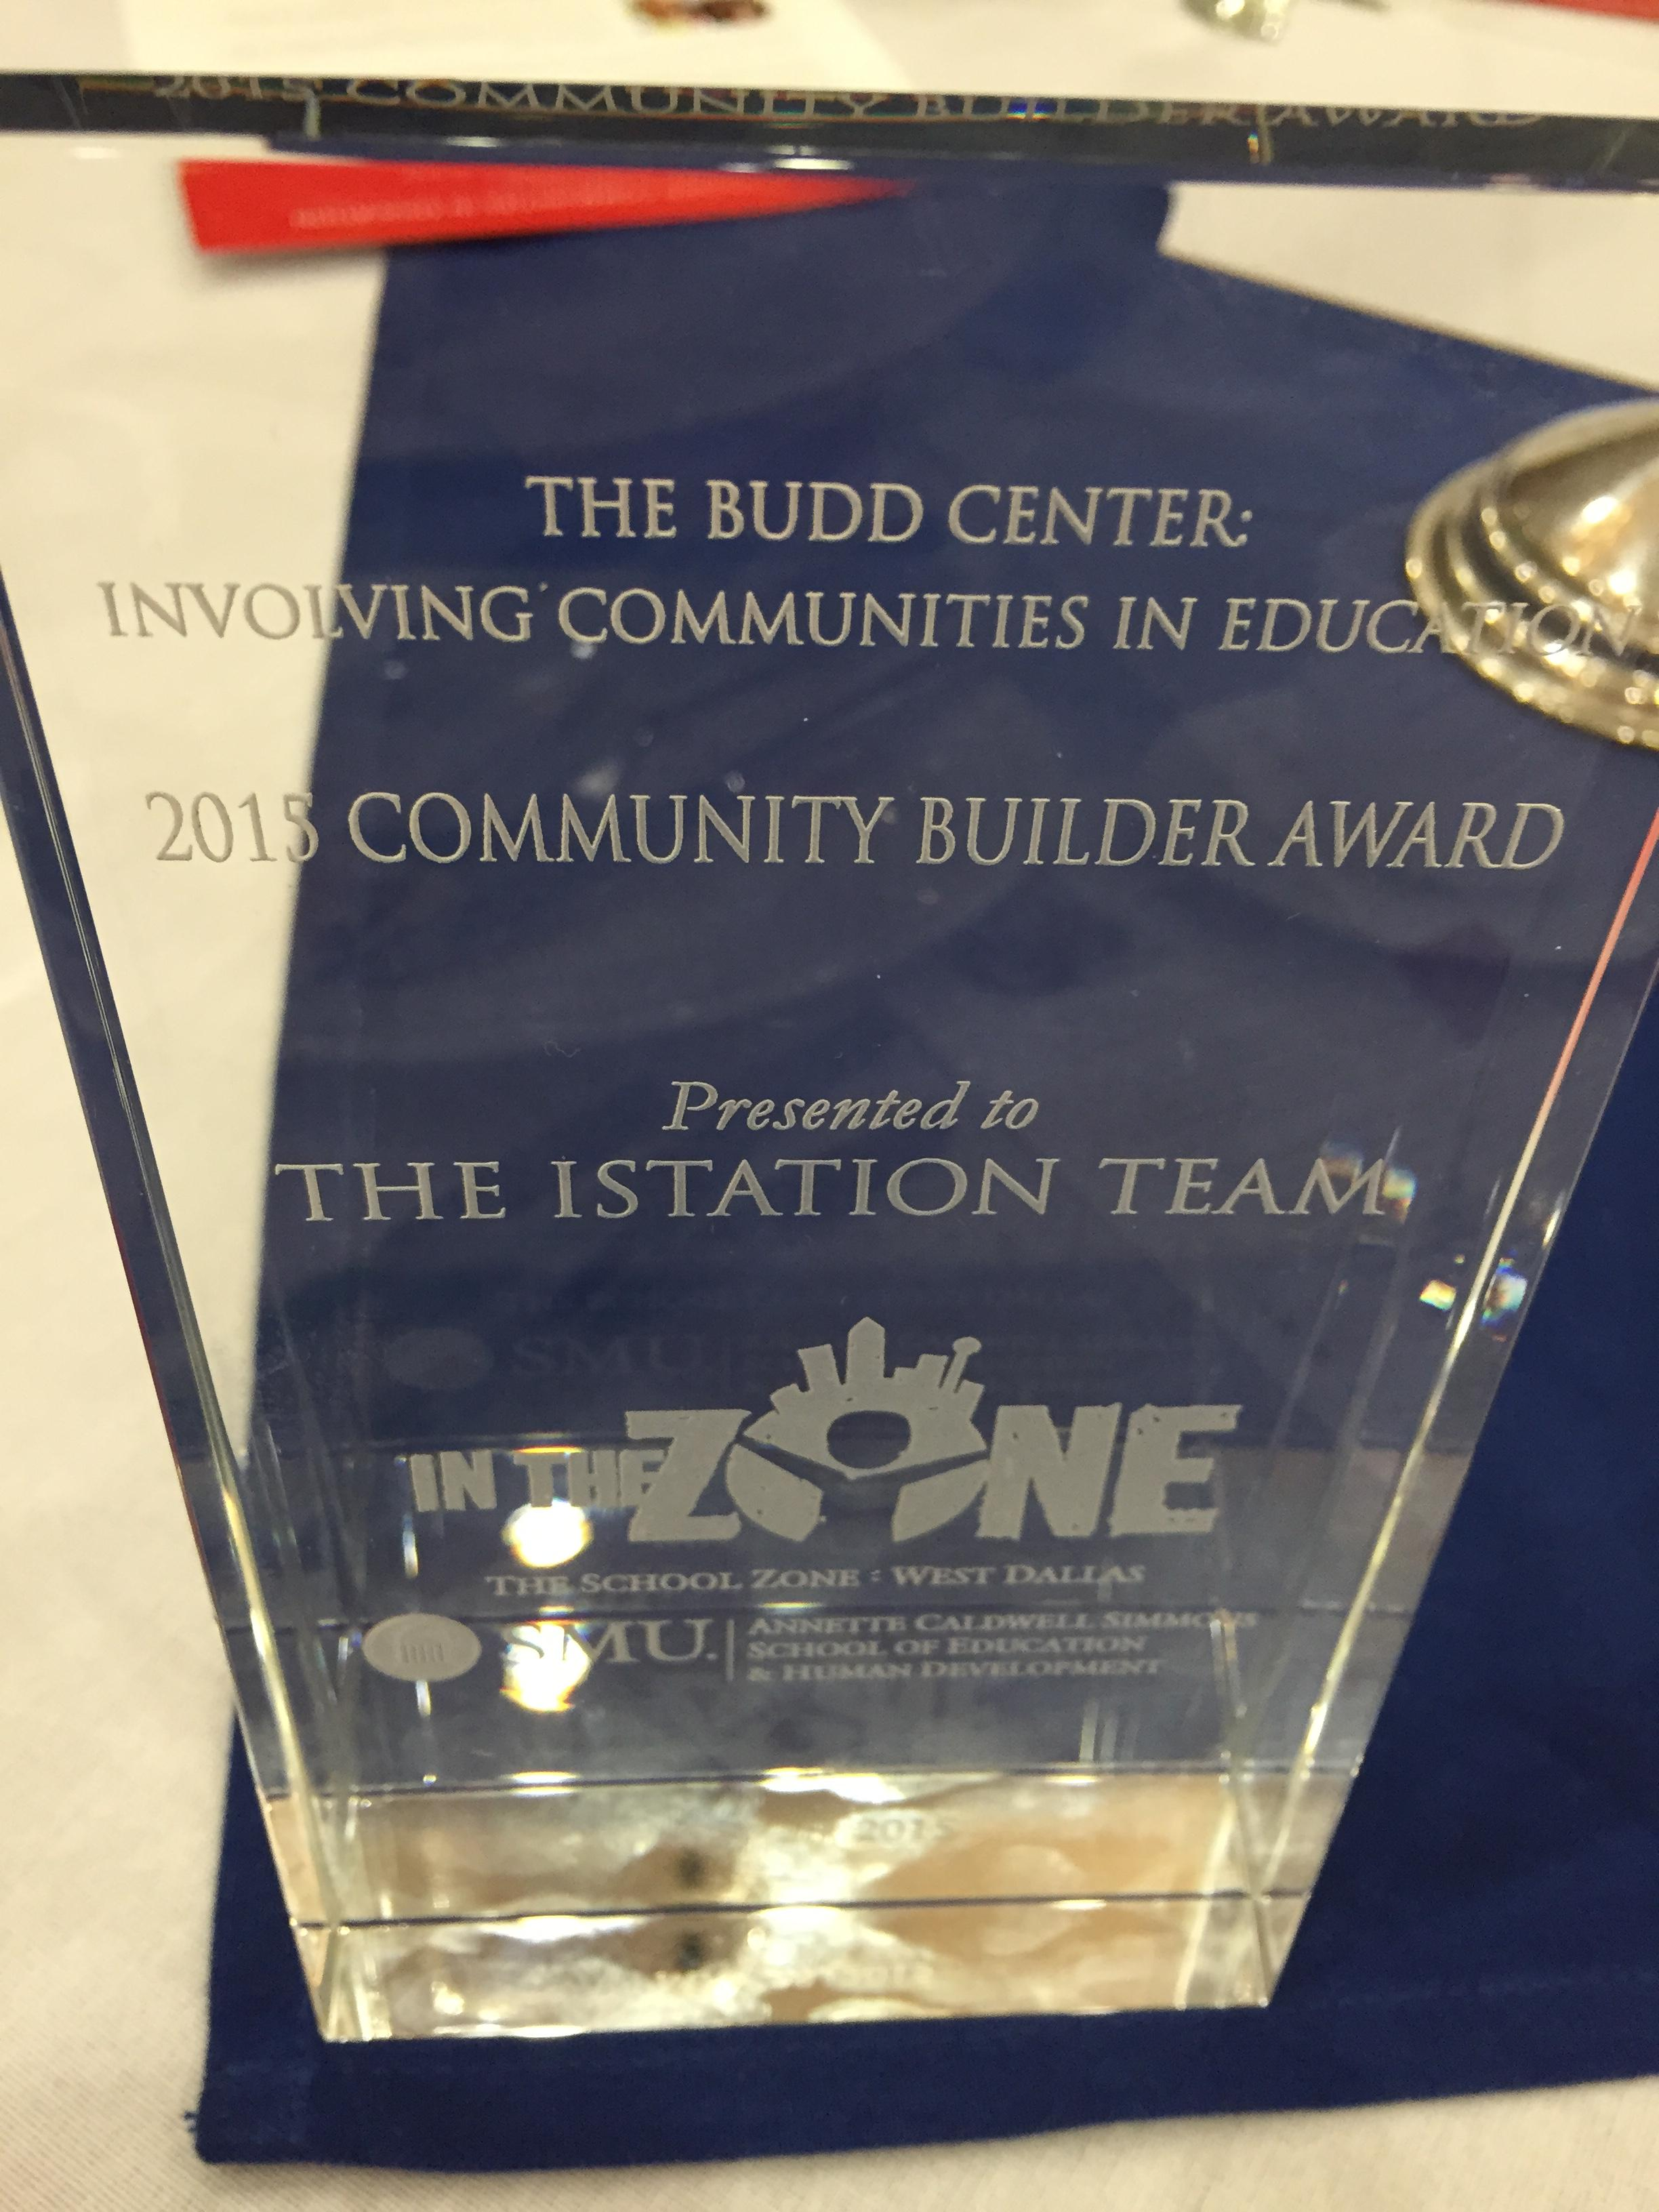 CommunityBuilderAward